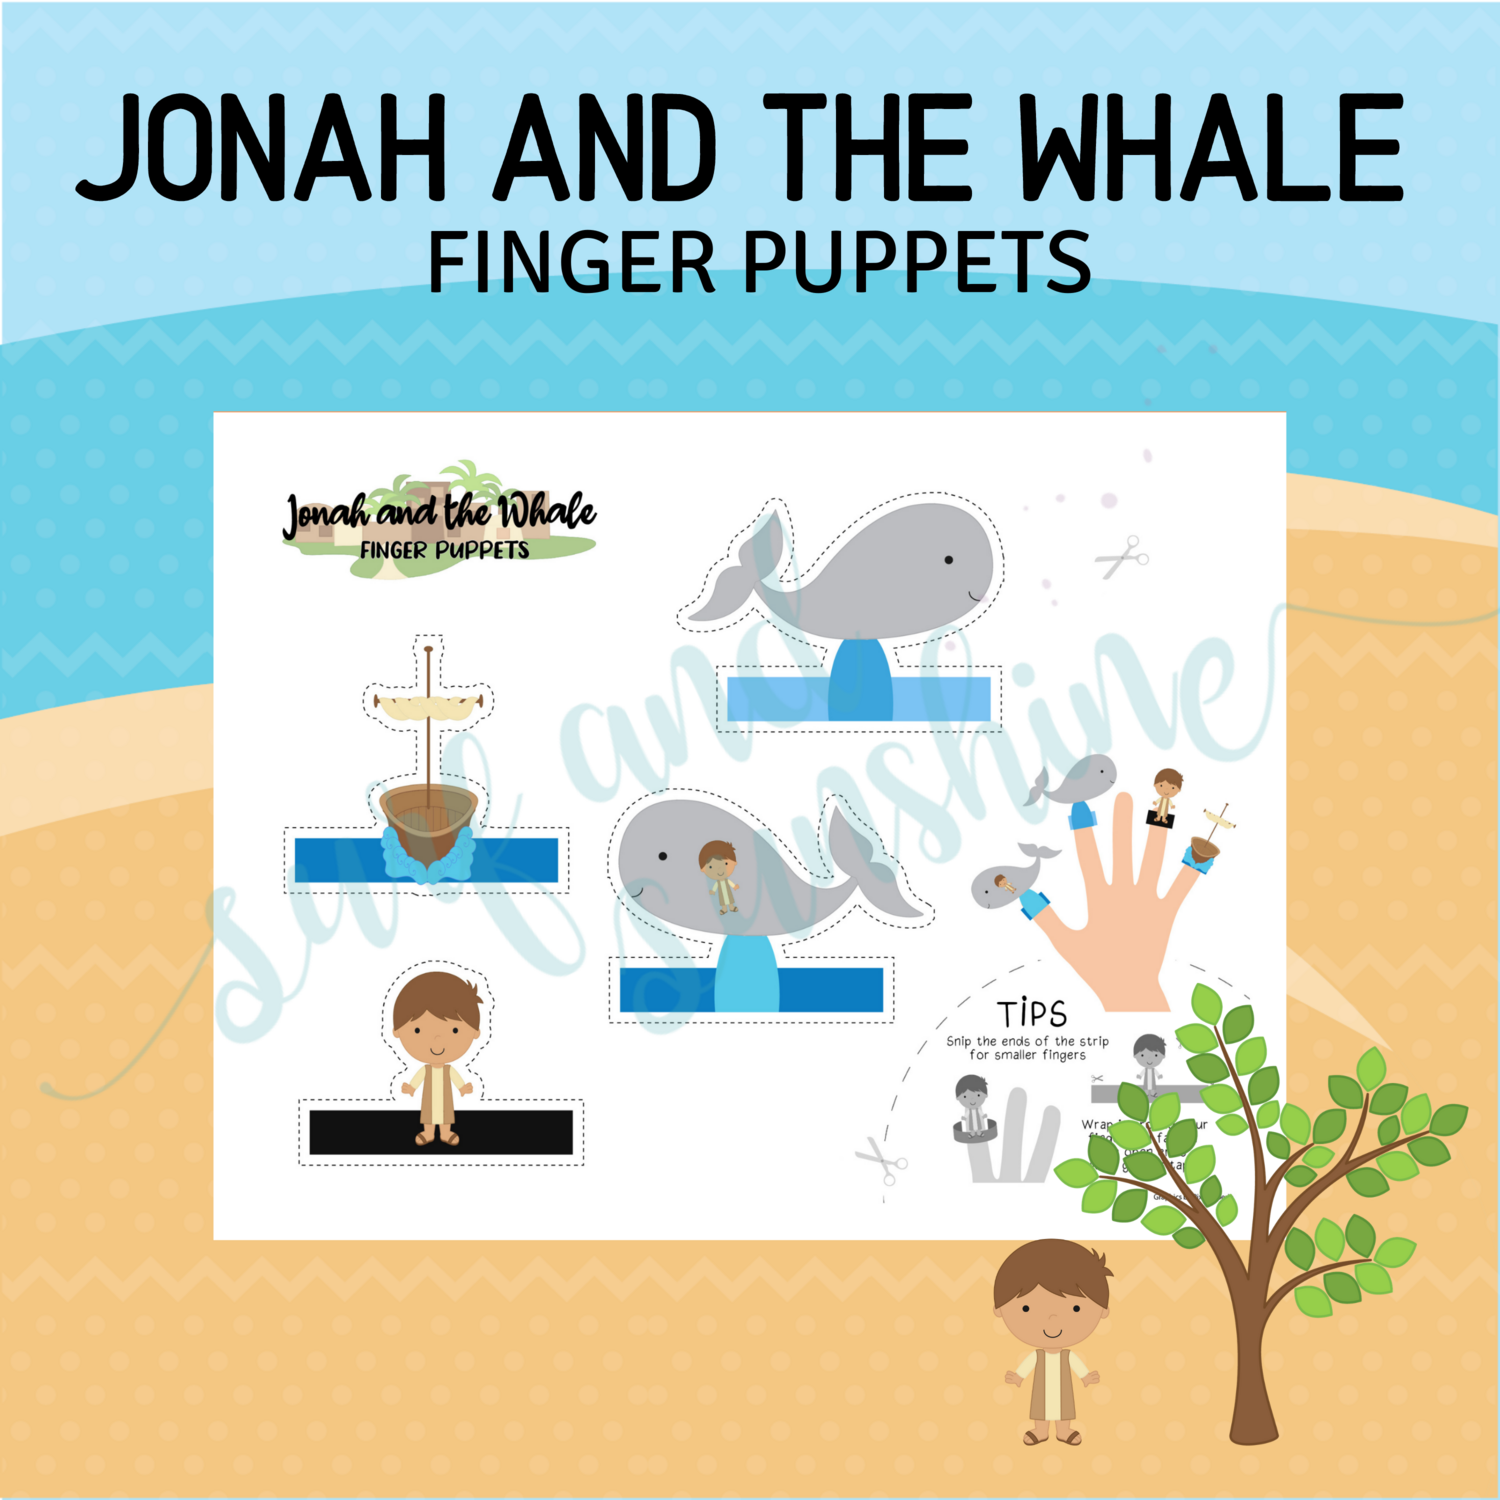 Free Printable Finger Puppets - Jonah and the Whale